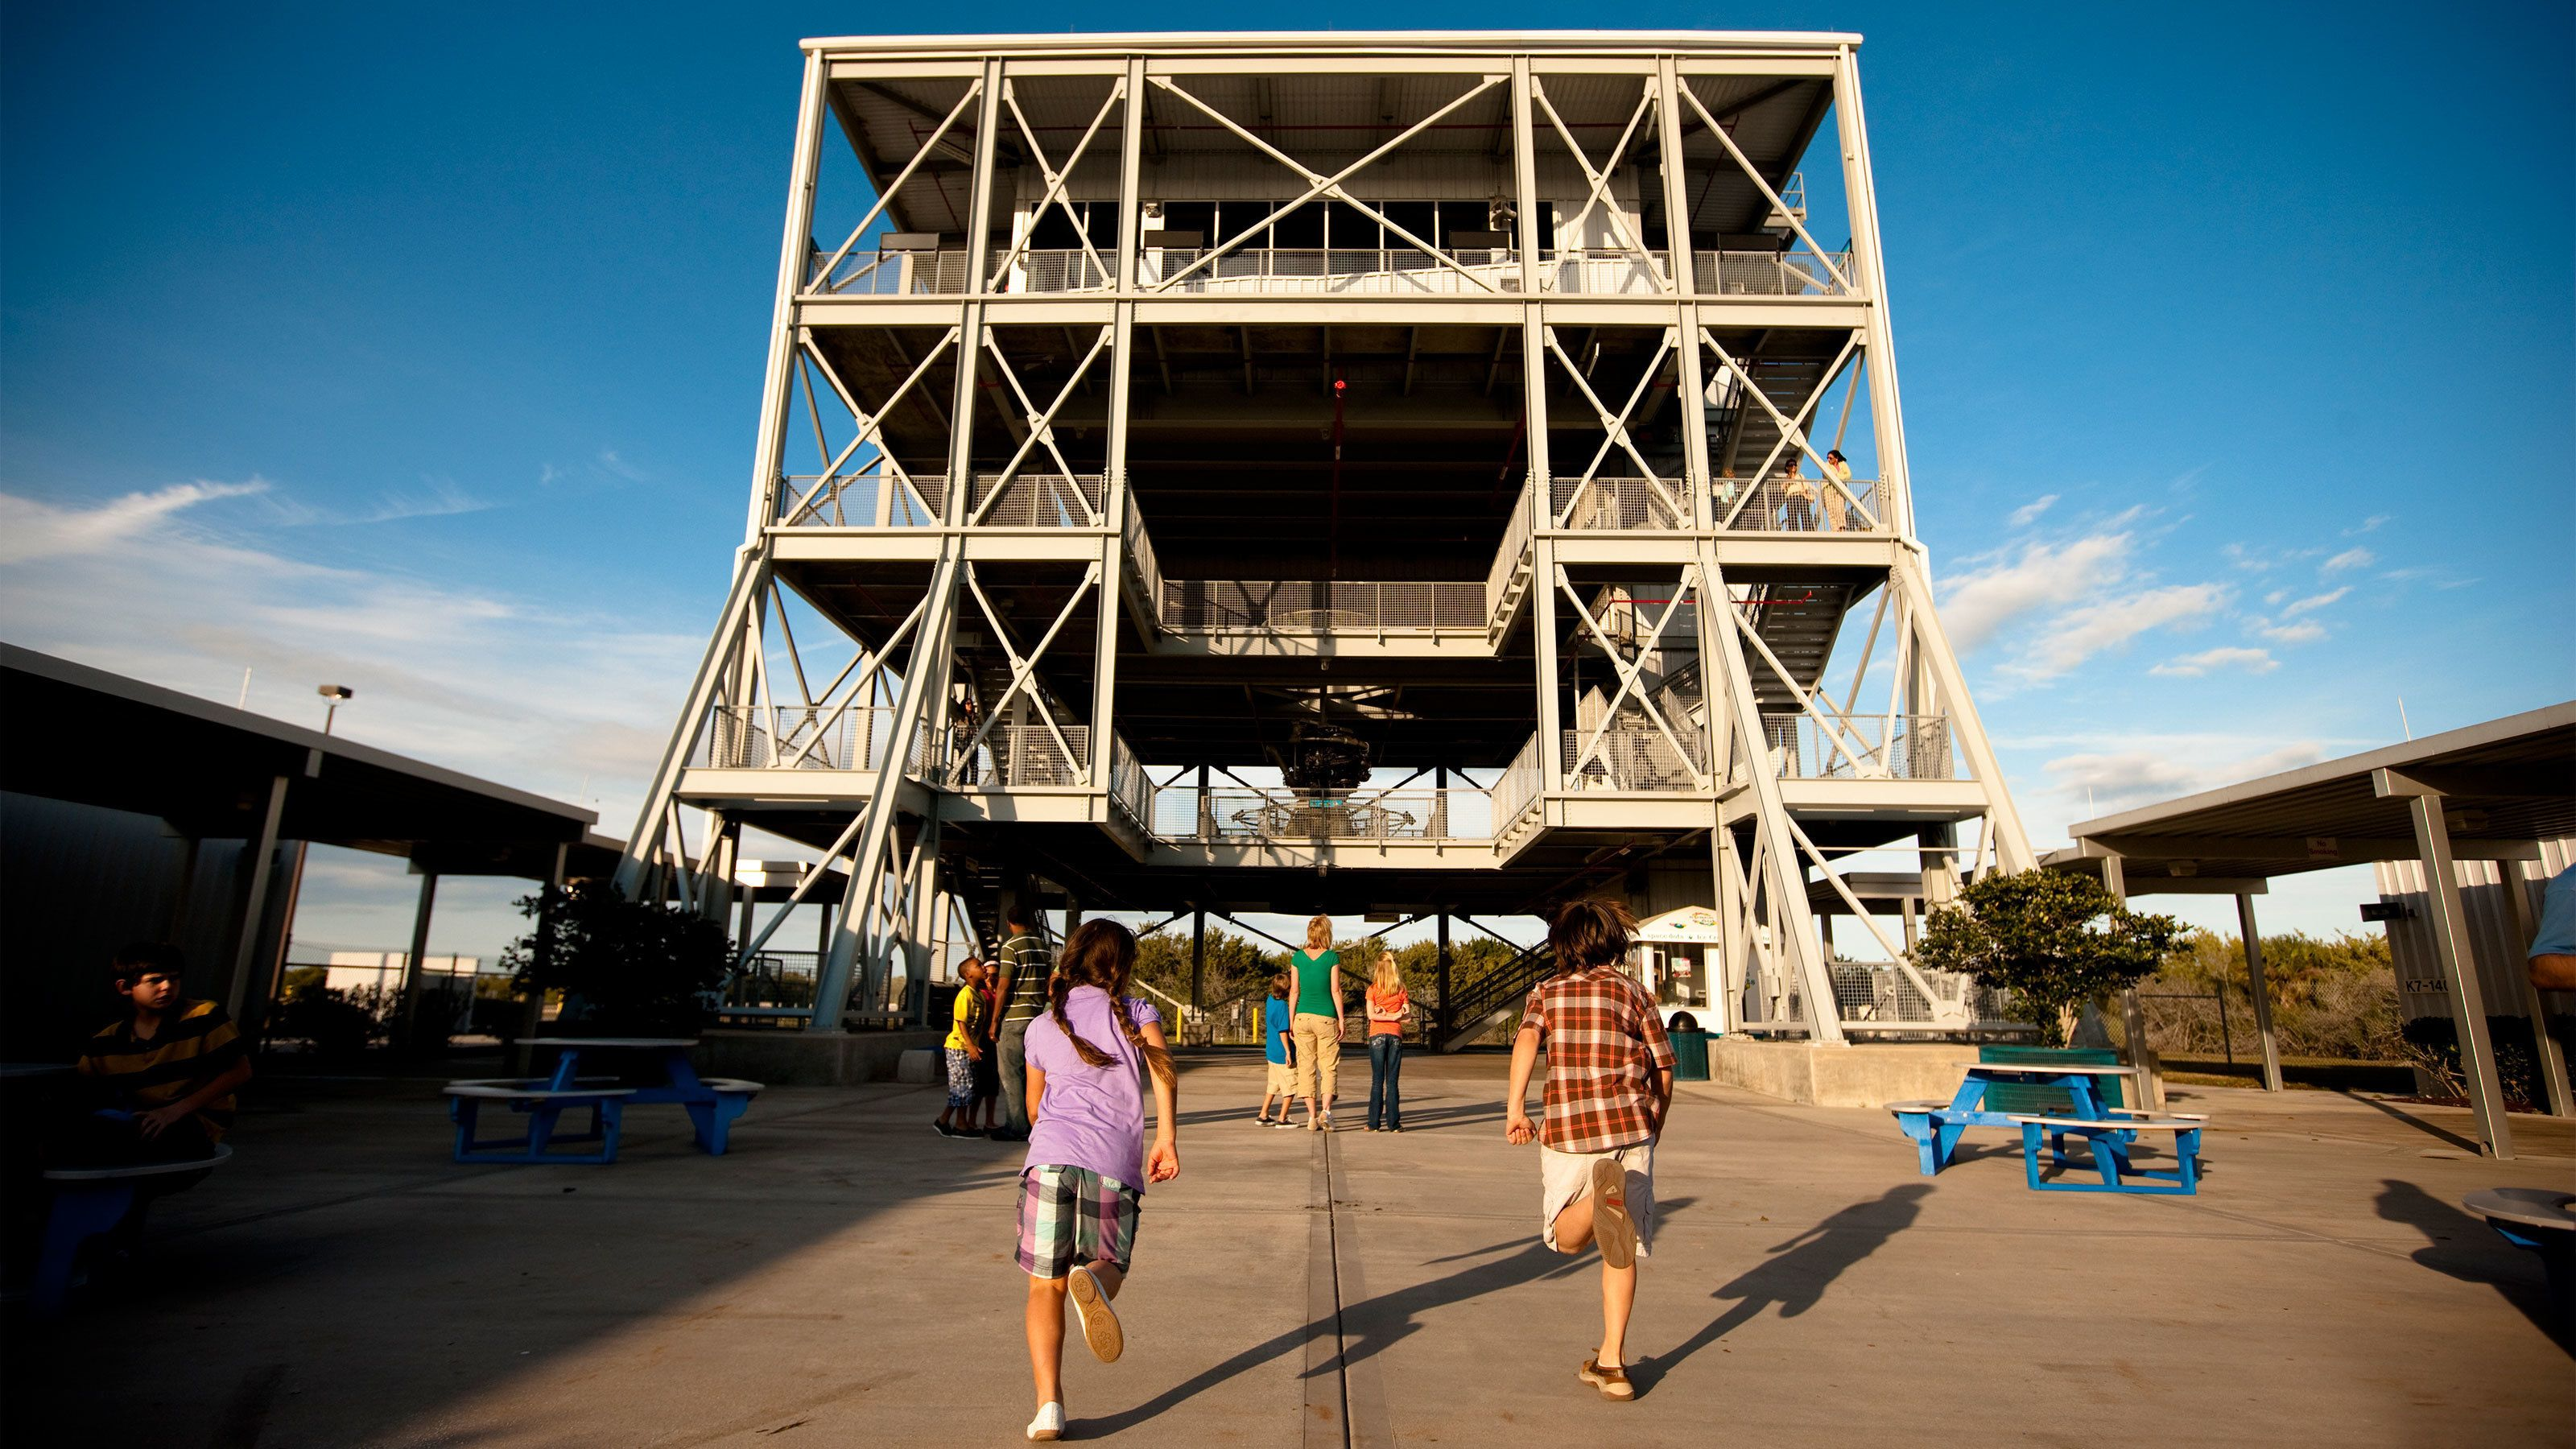 Kennedy Space Center with kids running in Orlando.